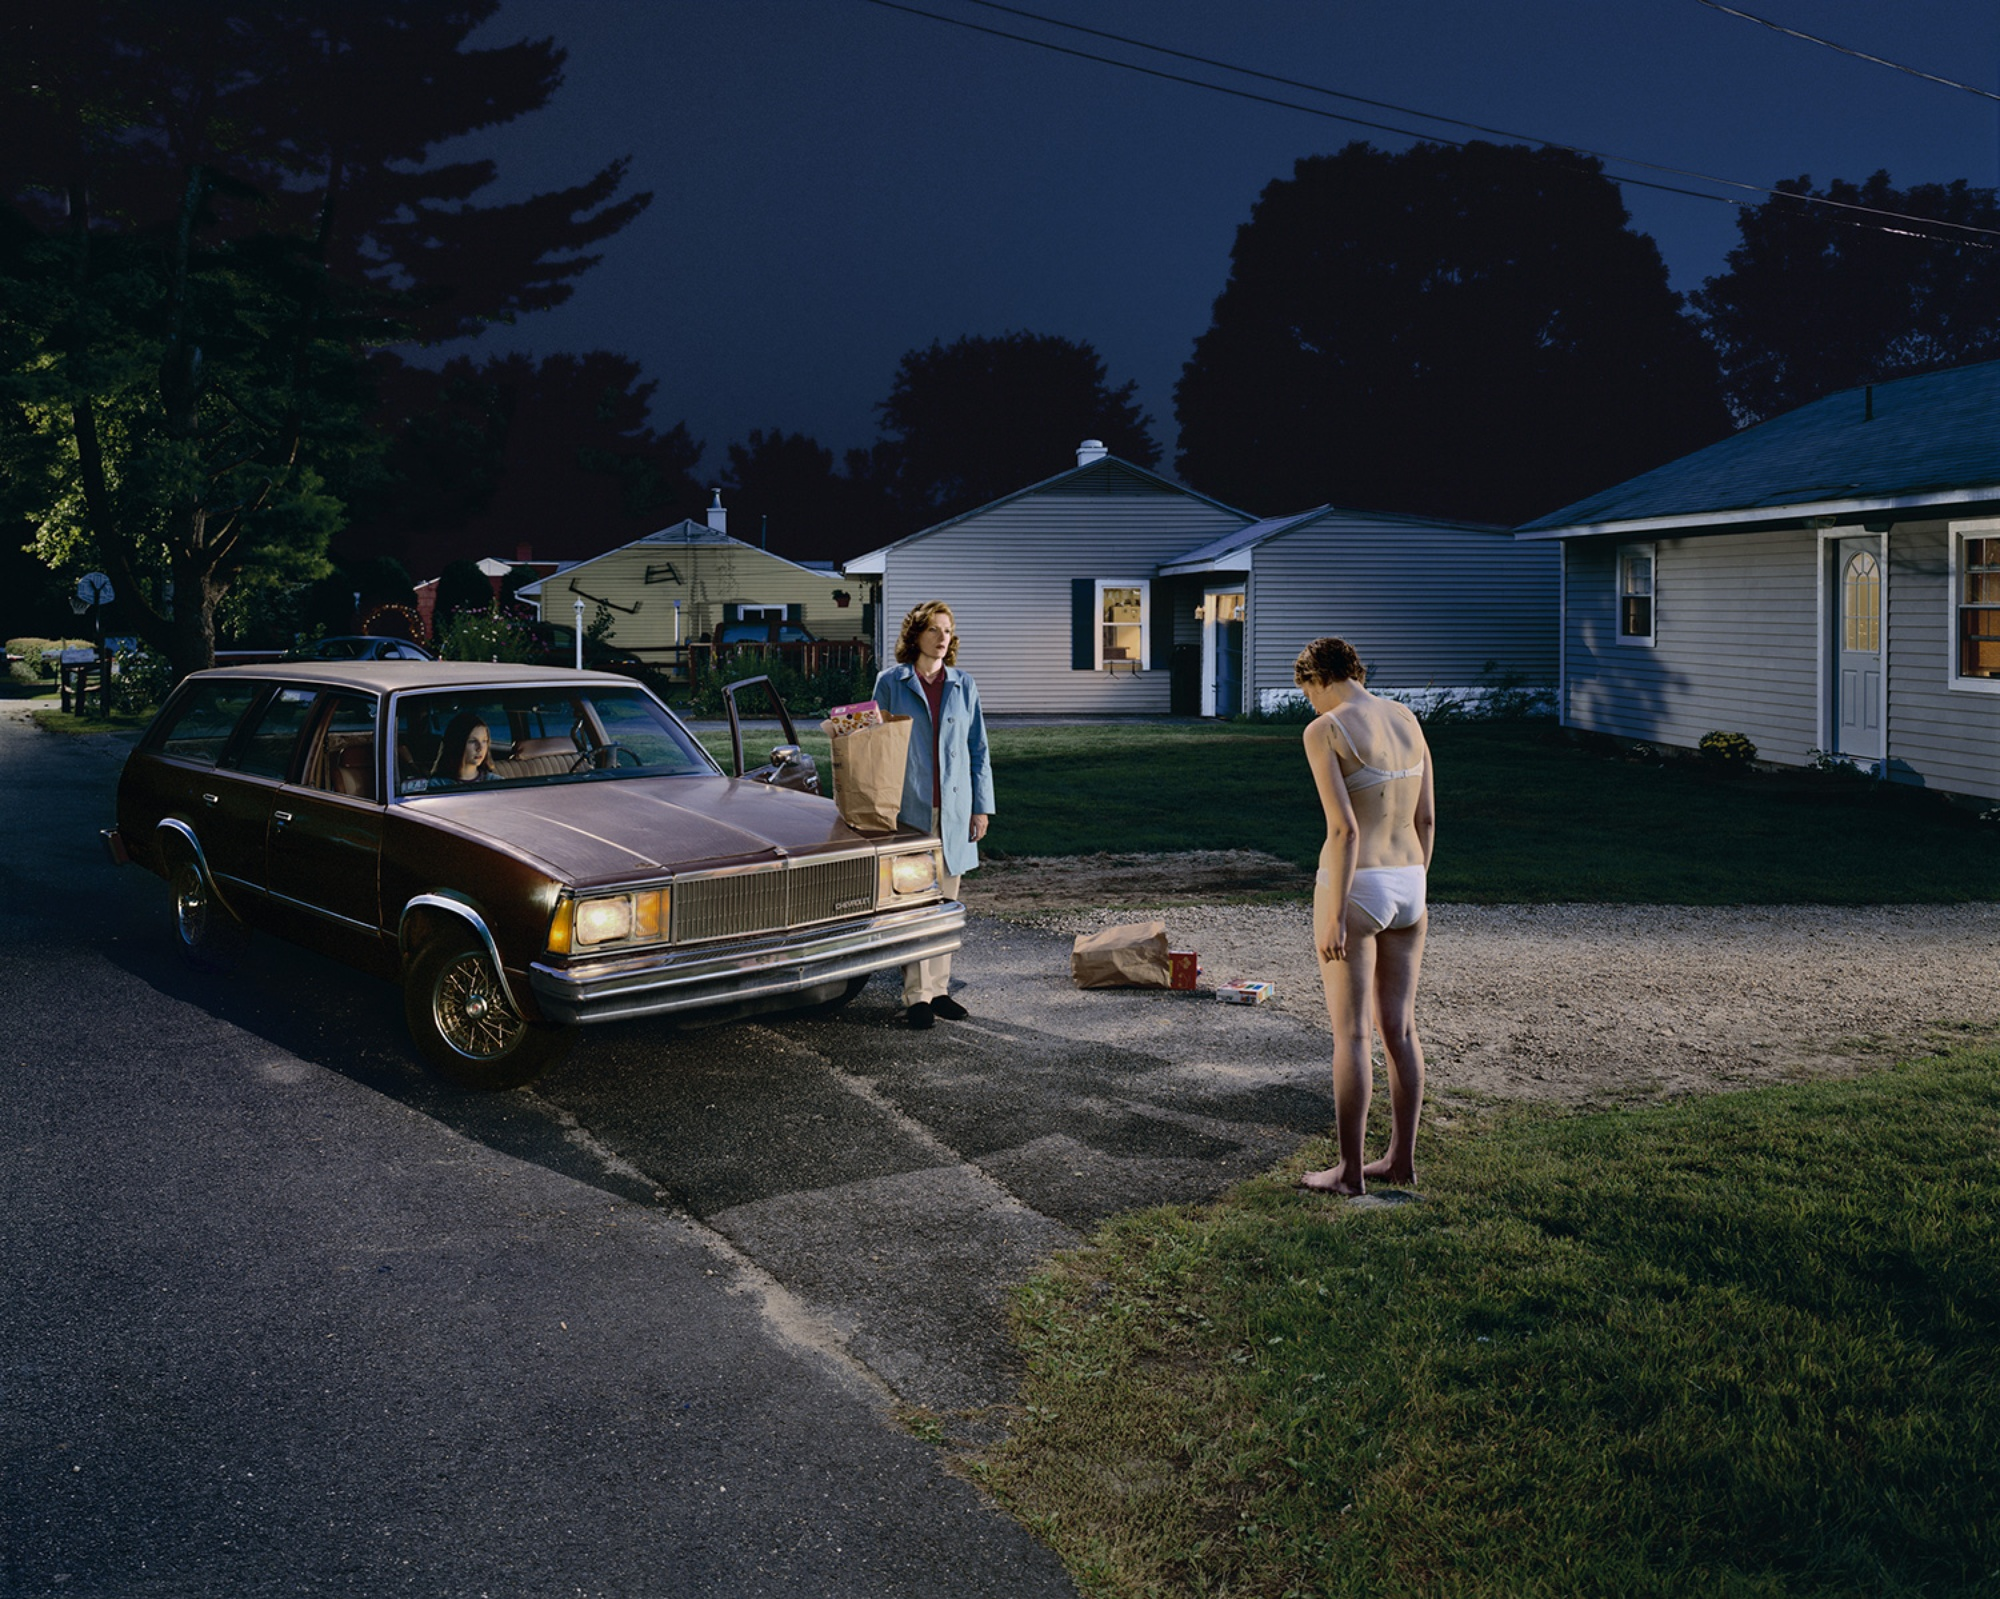 Gregory Crewdson Penitent Daughter 2001-2 Courtesy White Cube From Body of Art